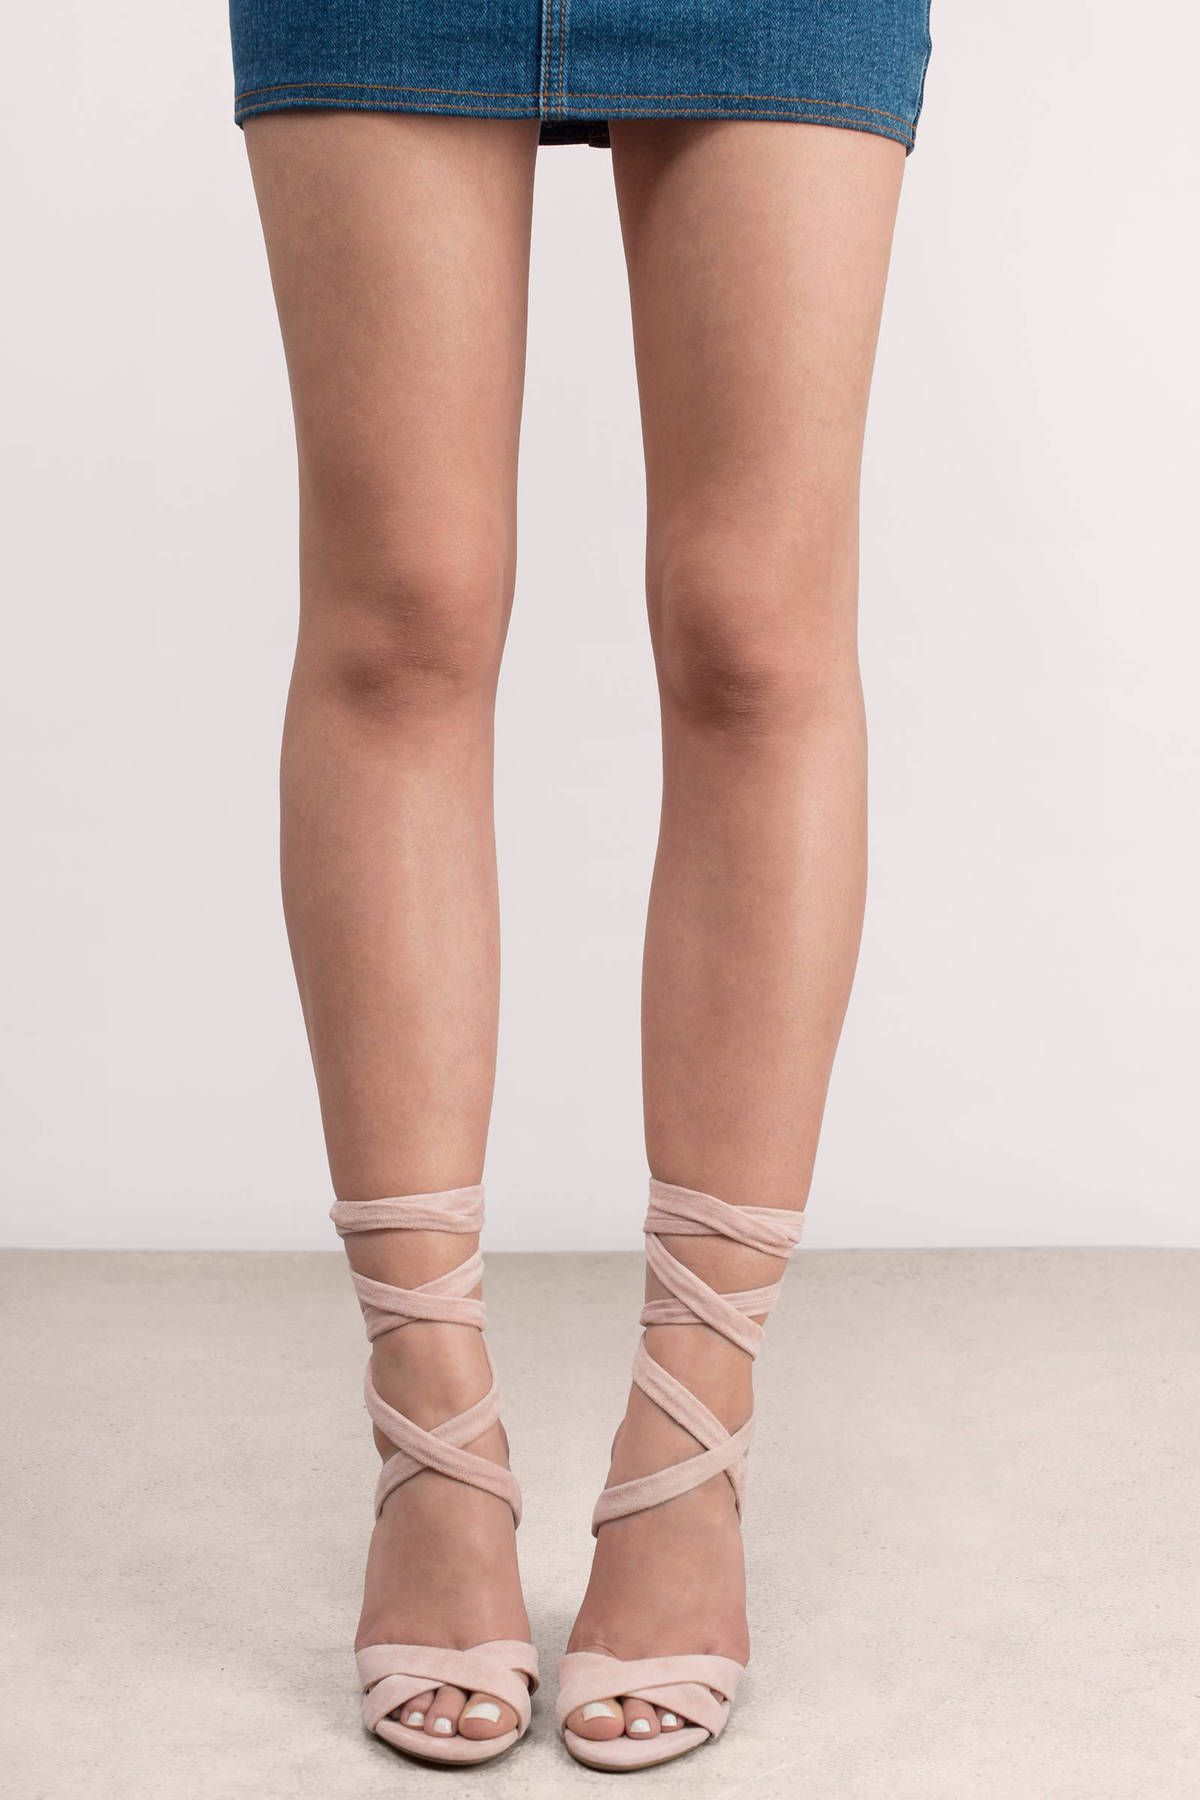 Shoes Hot Sale Fresh Light Pink Suede Fringed High Heeled Strappy Sandals Open Toe Narrow Band Braid Design Ankle Lace Up Tassels High Heels Street Price